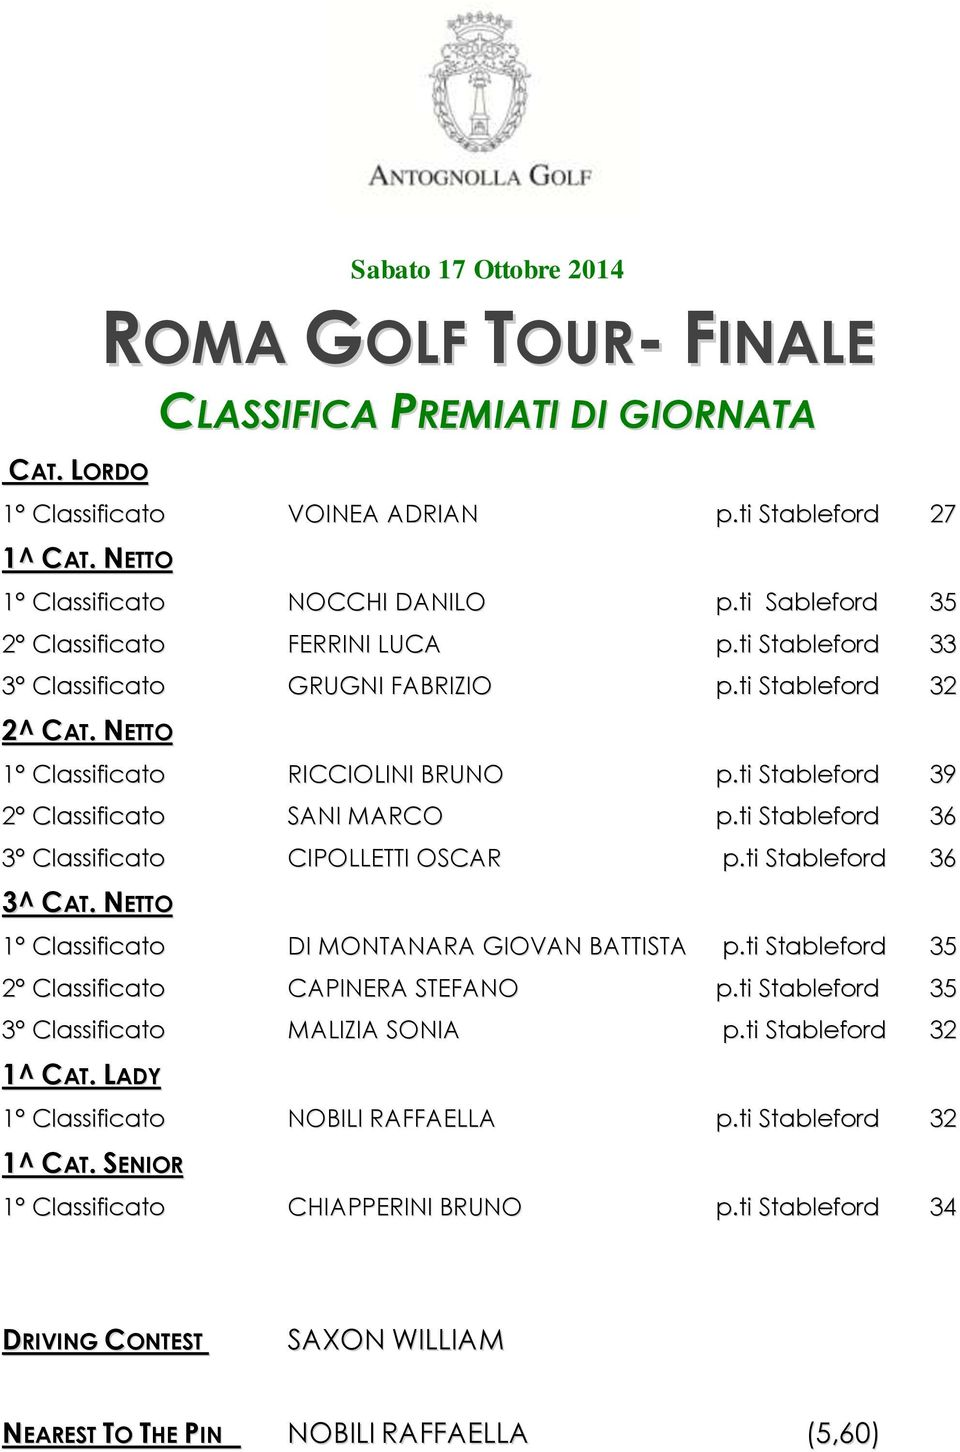 ti Stableford 39 2 Classificato SANI MARCO p.ti Stableford 36 3 Classificato CIPOLLETTI OSCAR p.ti Stableford 36 3^ CAT. NETTO 1 Classificato DI MONTANARA GIOVAN BATTISTA p.